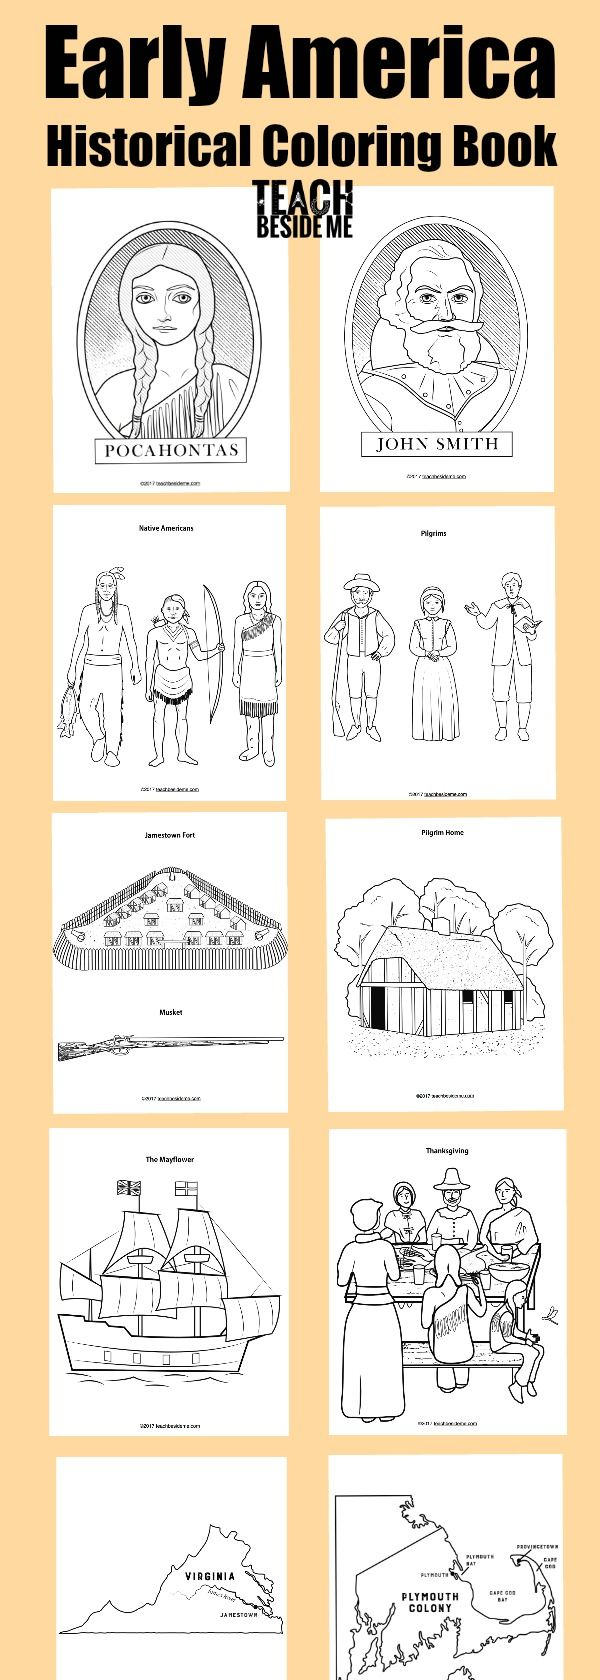 Historical Early America Coloring Pages- Great for Thanksgiving or US history units #history #thanksgiving #americanhistory #america #pilgrims #nativeamericans via @karyntripp